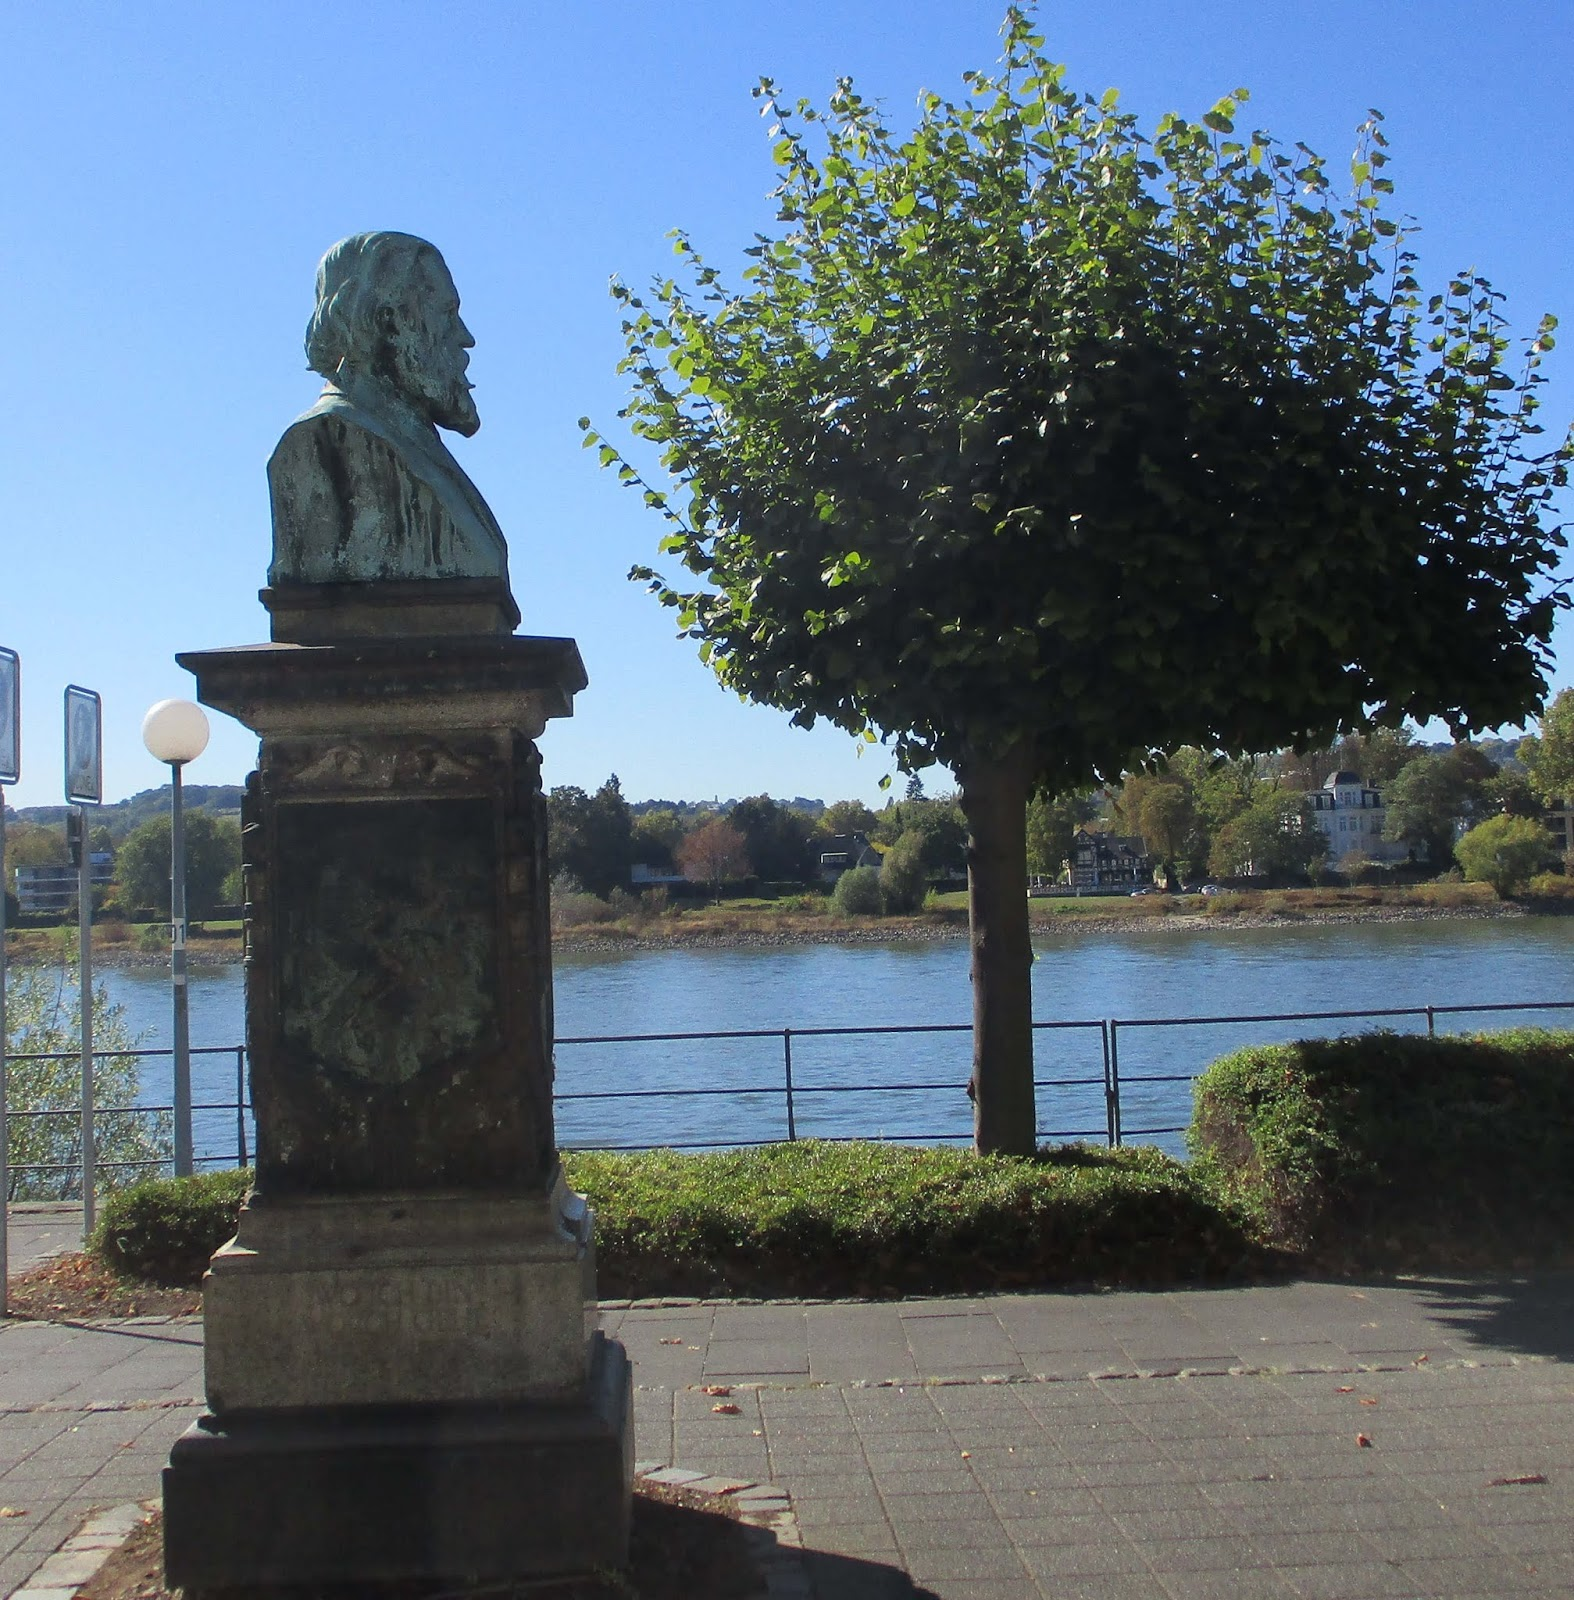 Humming A Diff Rent Tune My Heart S On The Rhine 1845 A